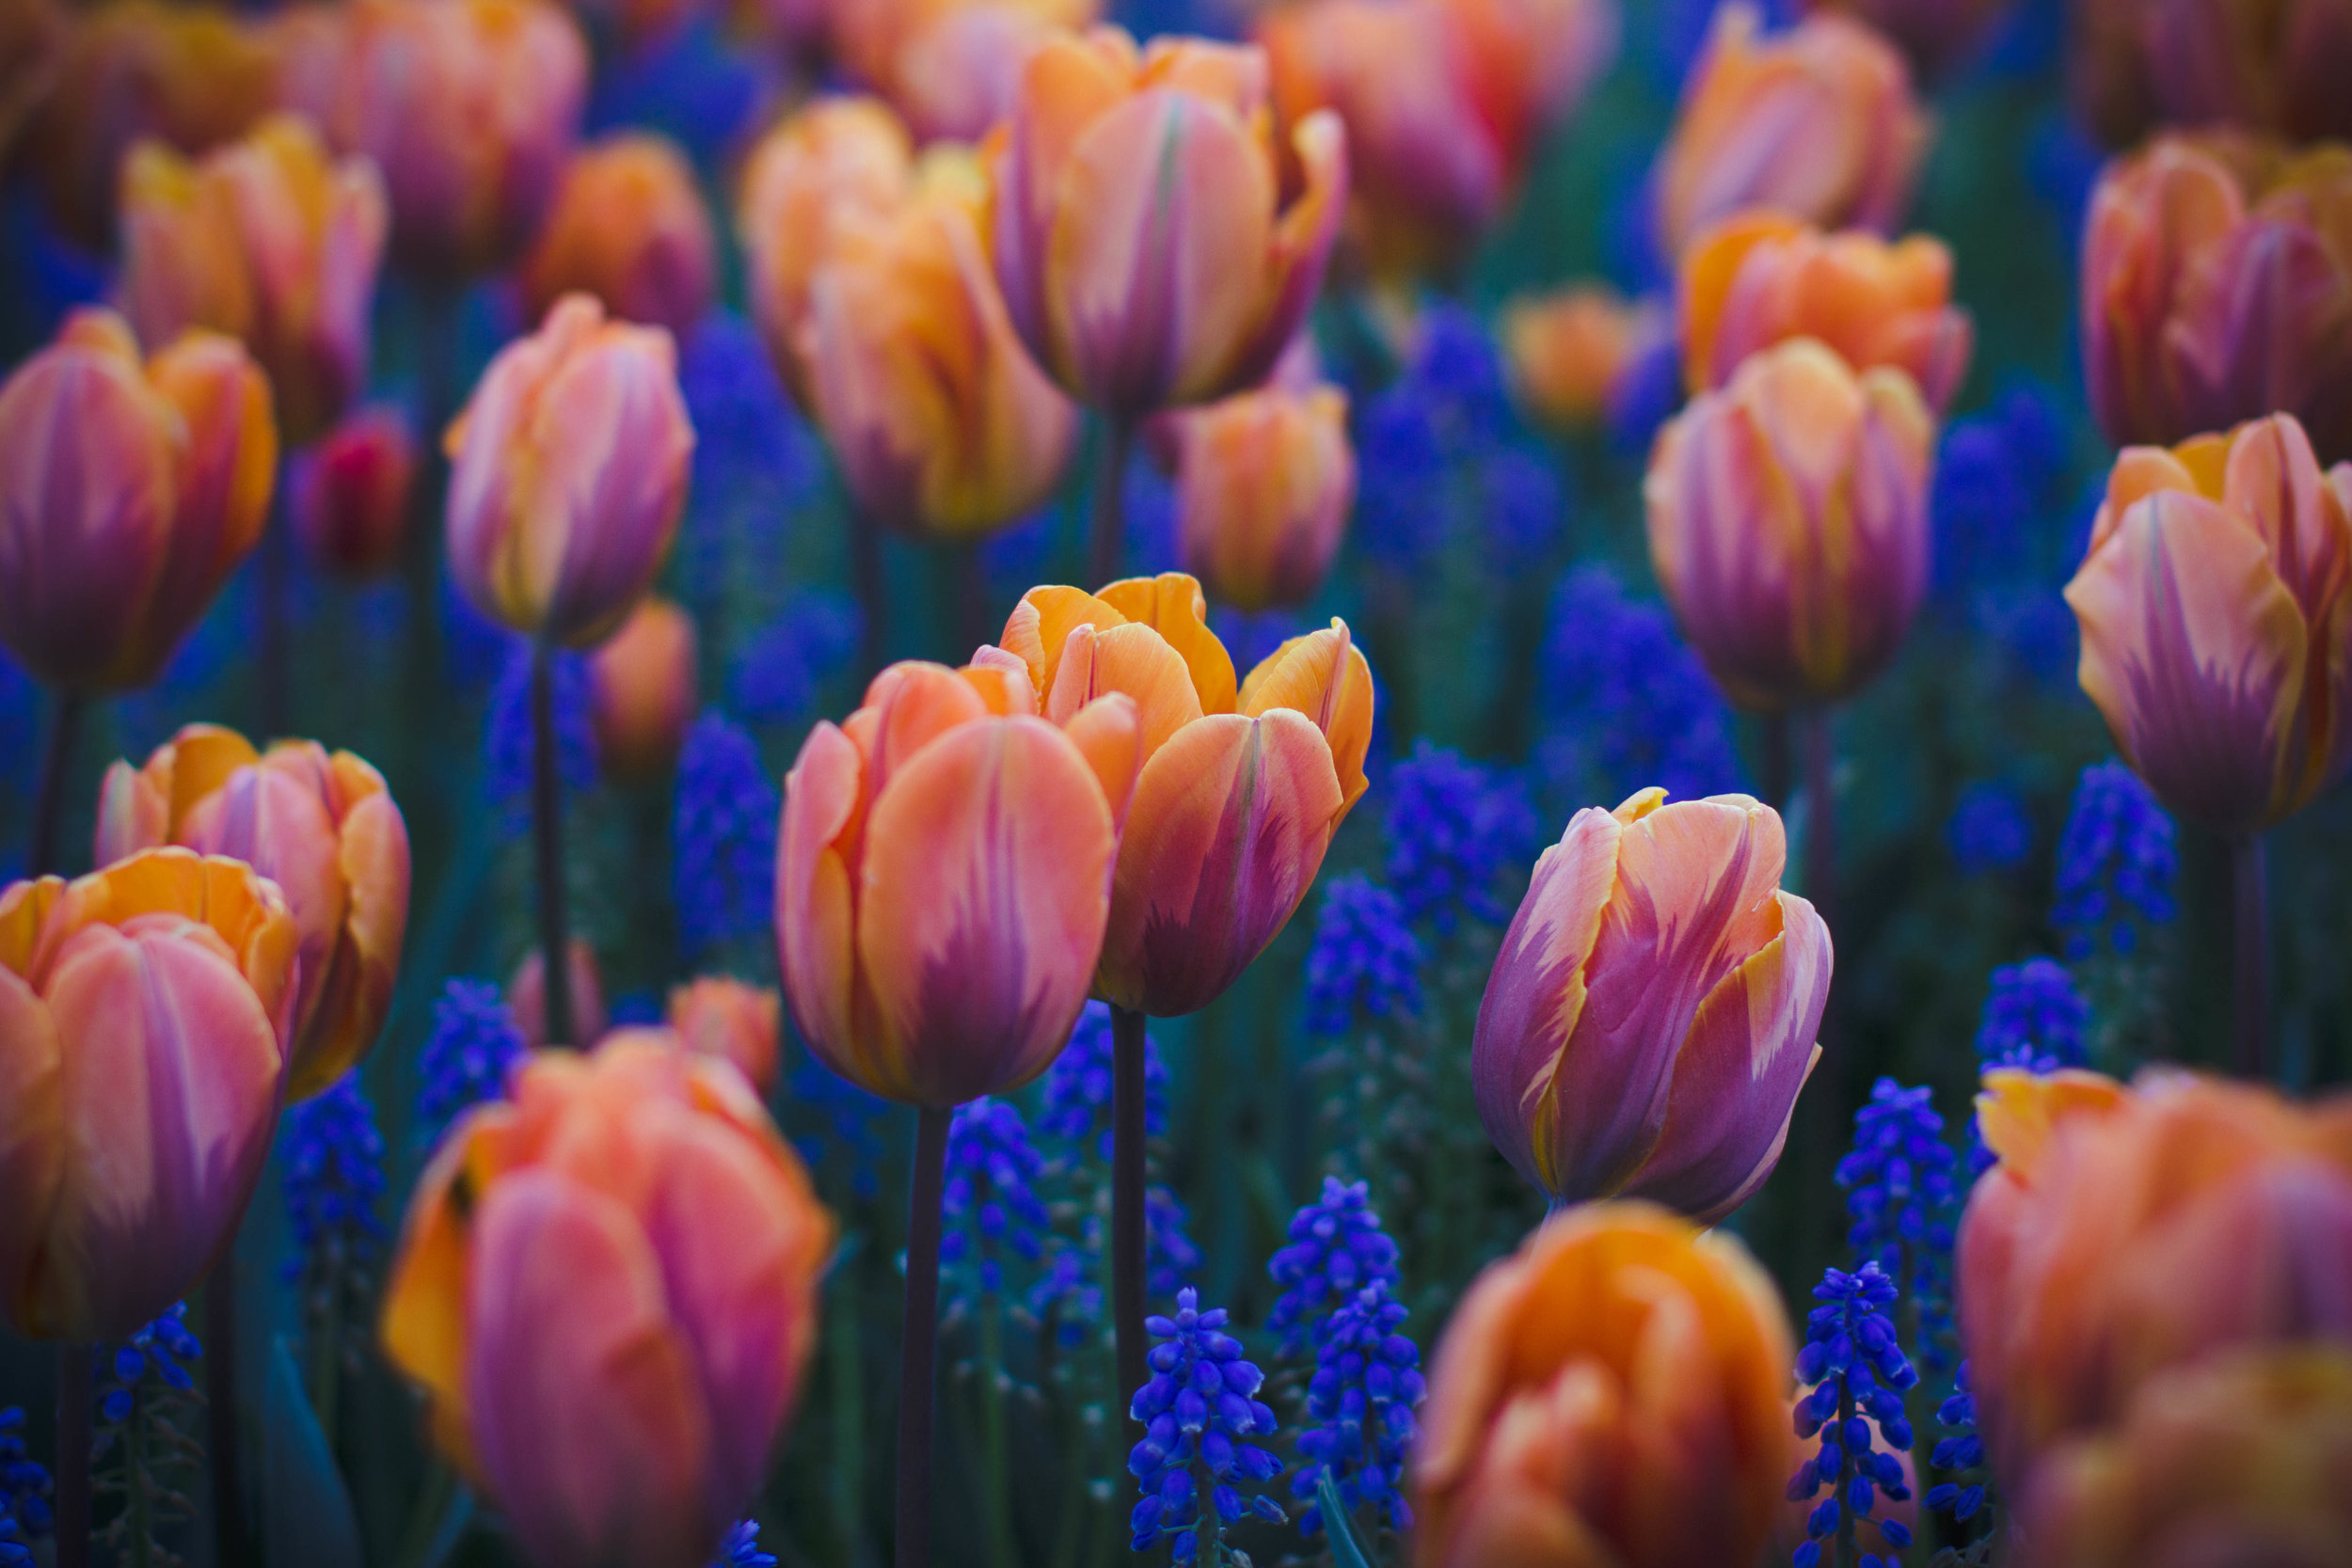 Tulips – Skagit Valley, Washington